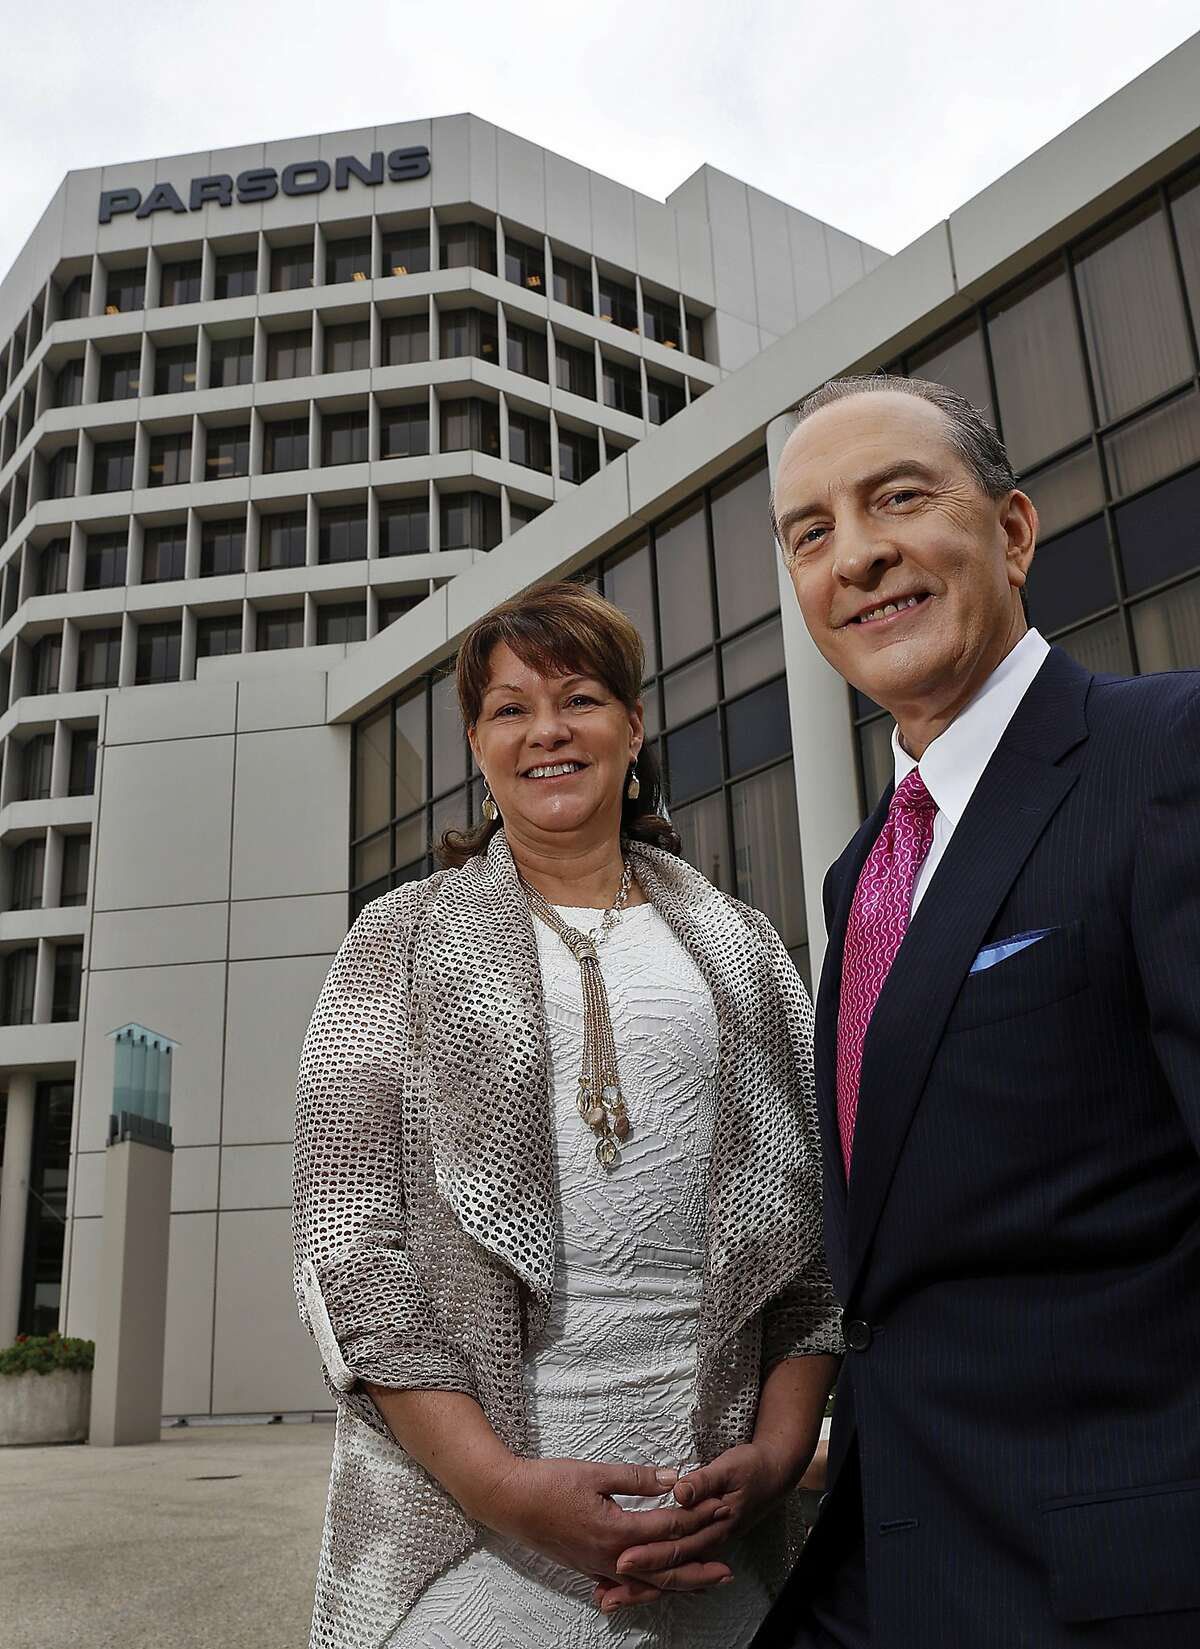 """Parsons Corp. Chief Executive Charles Harrington is preparing his Pasadena, Calif., firm for the age of """"electronic battlefields,"""" recently adding Suzanne Vautrinot, a retired Air Force major general who helped create the U.S. Cyber Command, to the board of directors. (Al Seib/Los Angeles Times/TNS)"""